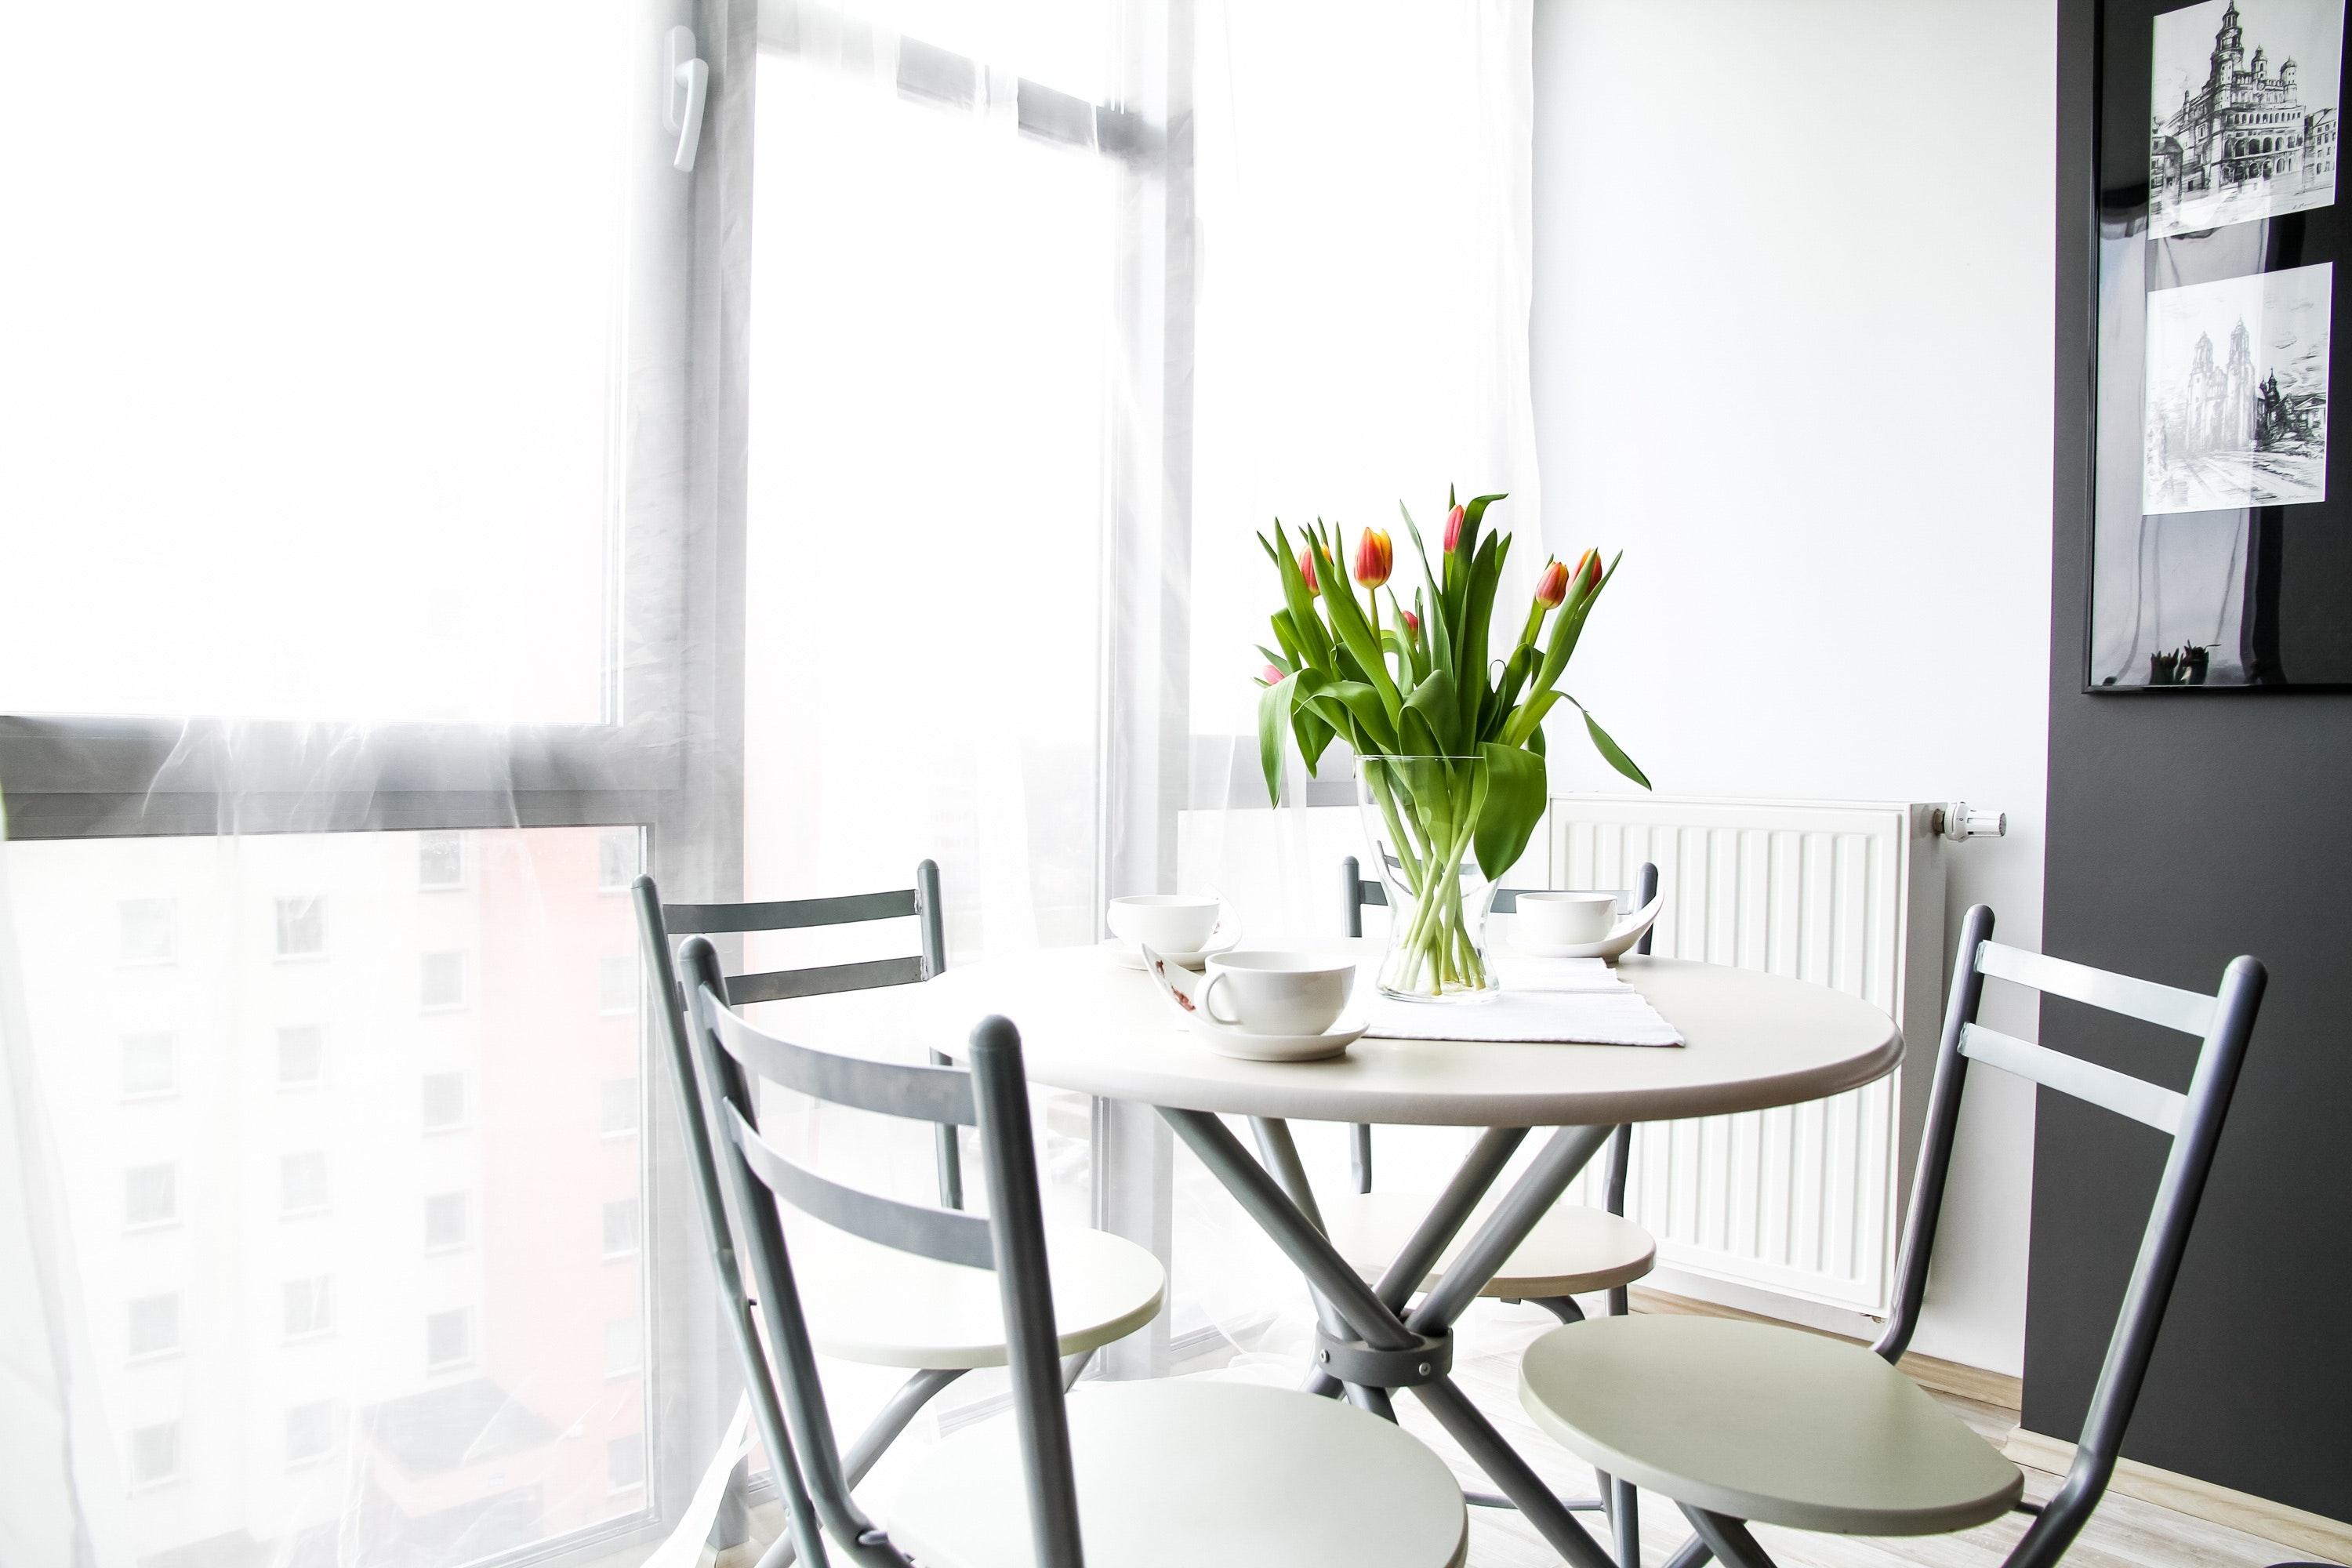 Should I sell my property with tenants still in it?